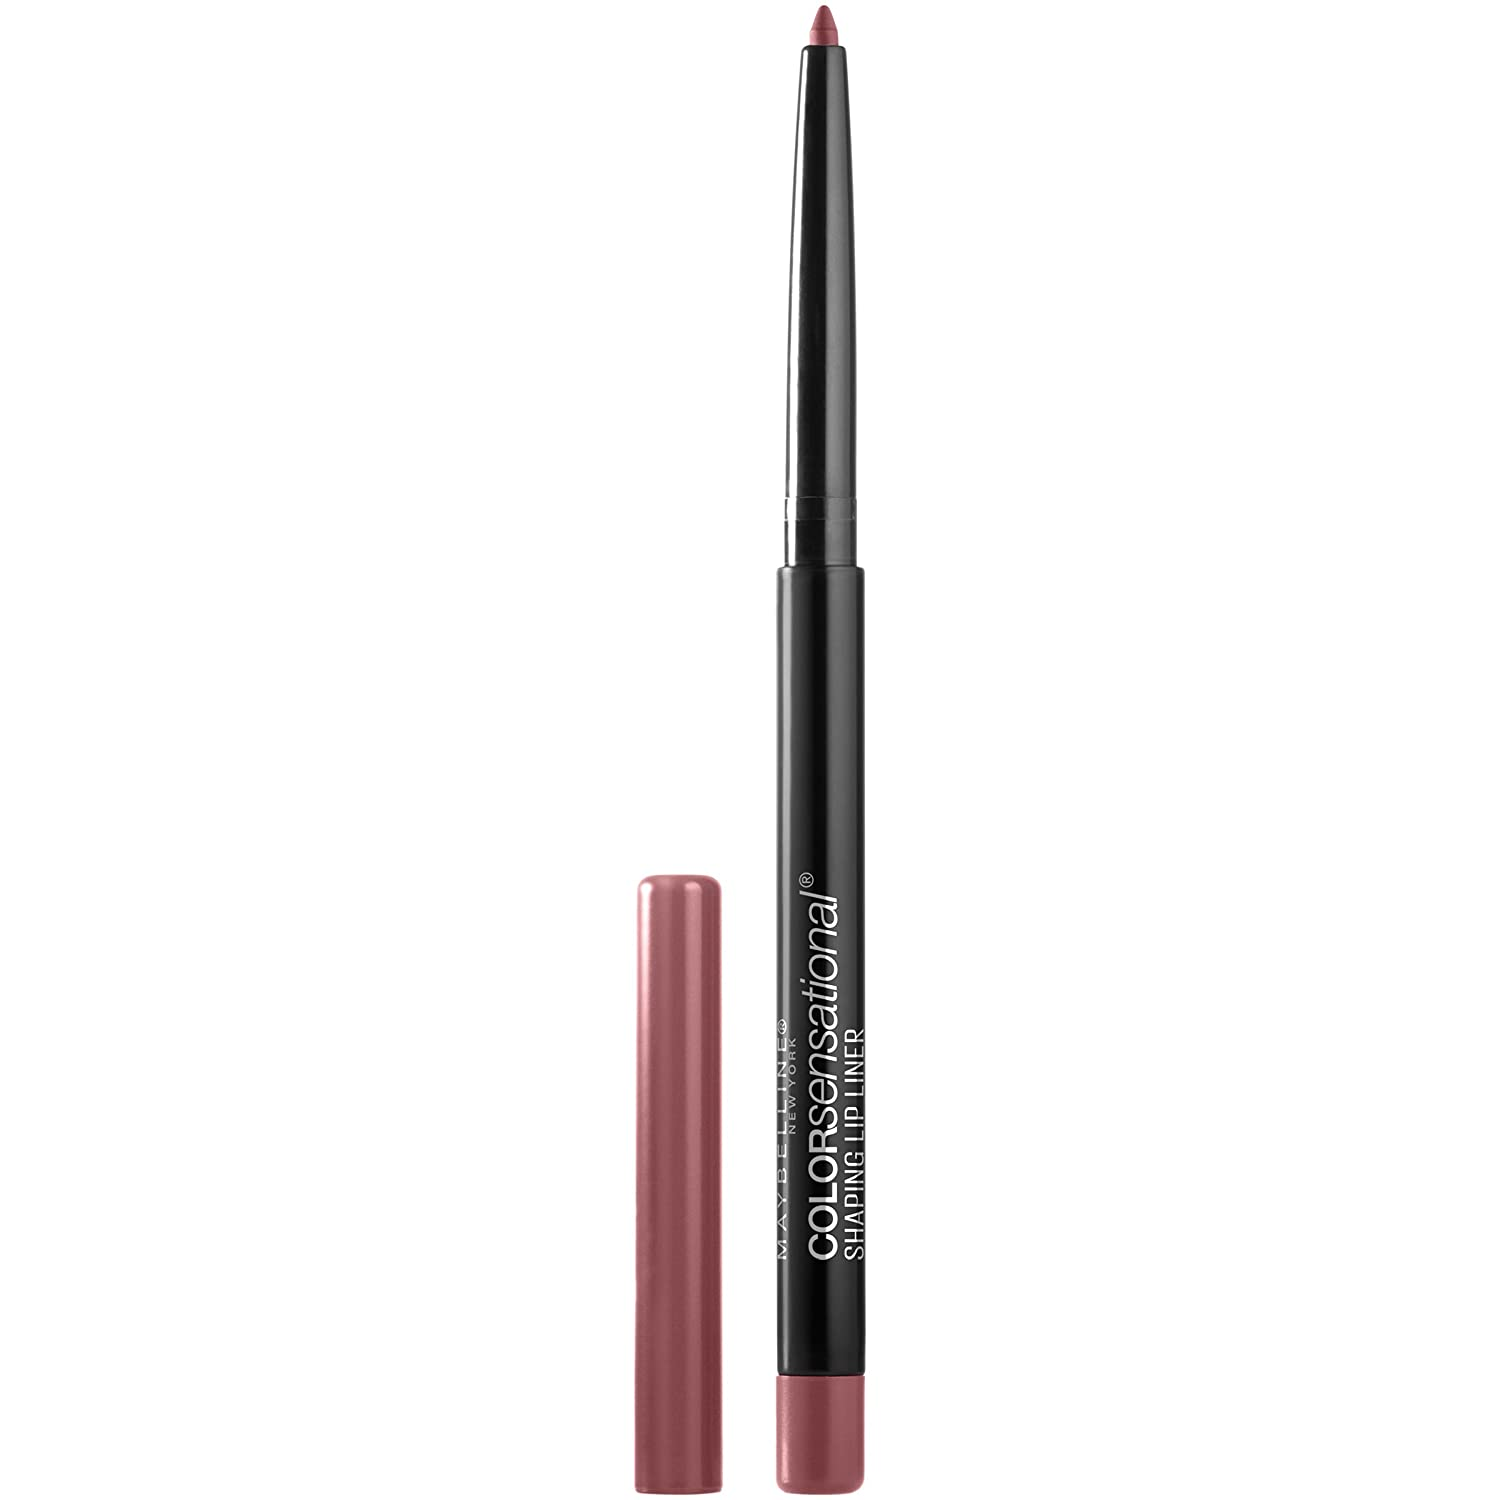 Maybelline New York Color Sensational Shaping Lip Liner Makeup, Raw Chocolate, 0.01 oz. 041554549355